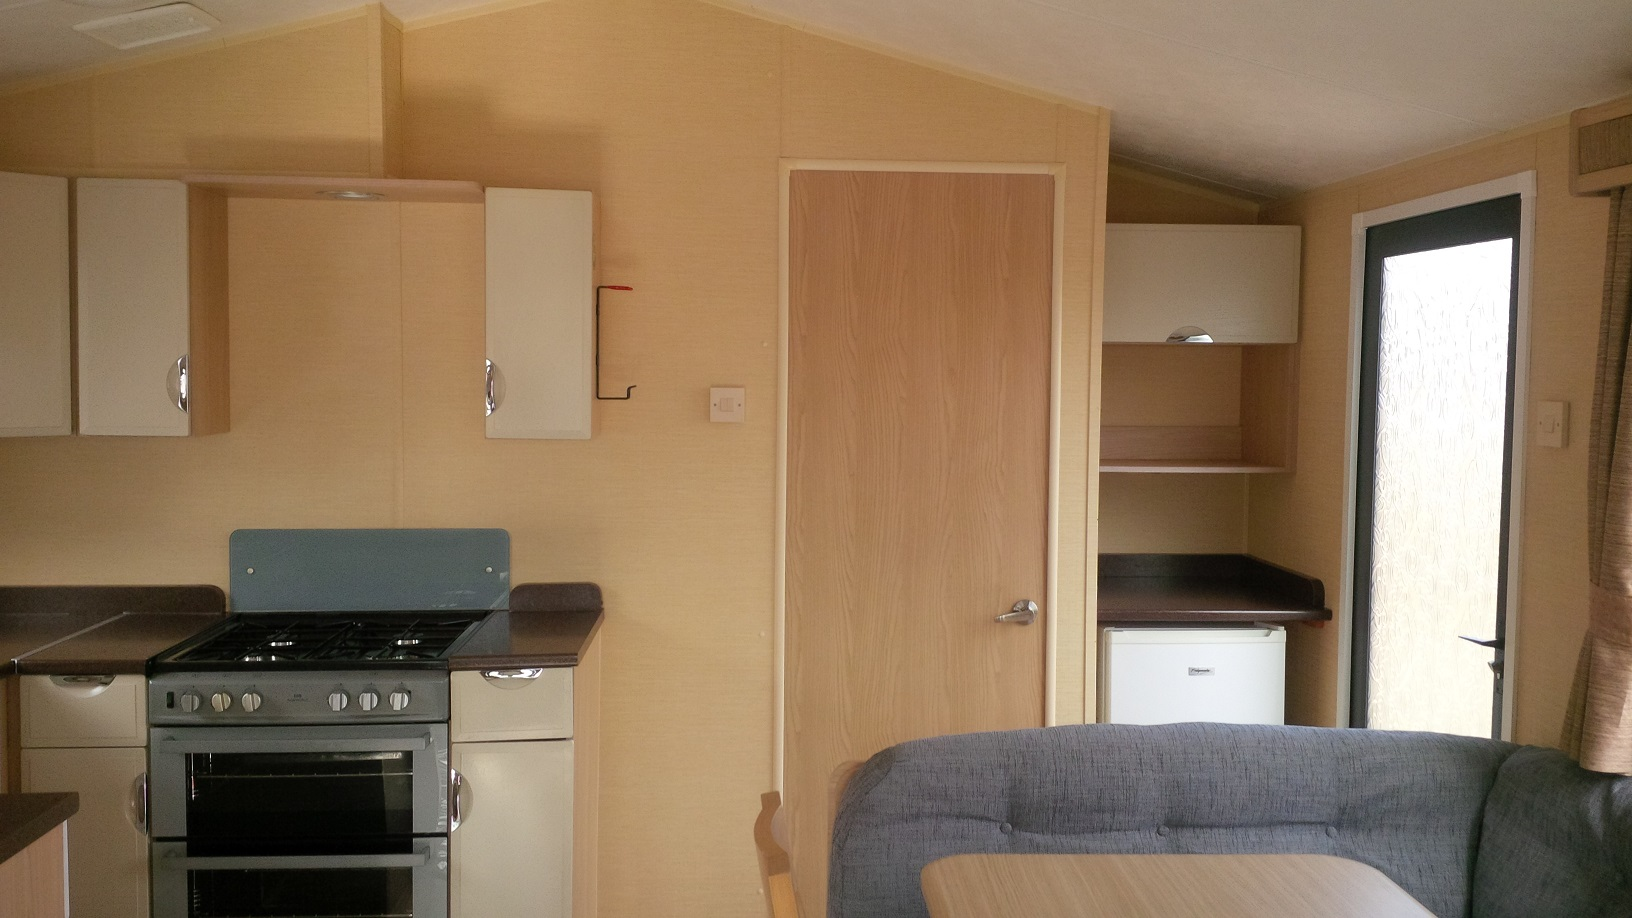 Willerby Westmorland: Used Static Caravans and Holiday Homes for sale, Langley Moor, Durham Large Image 3